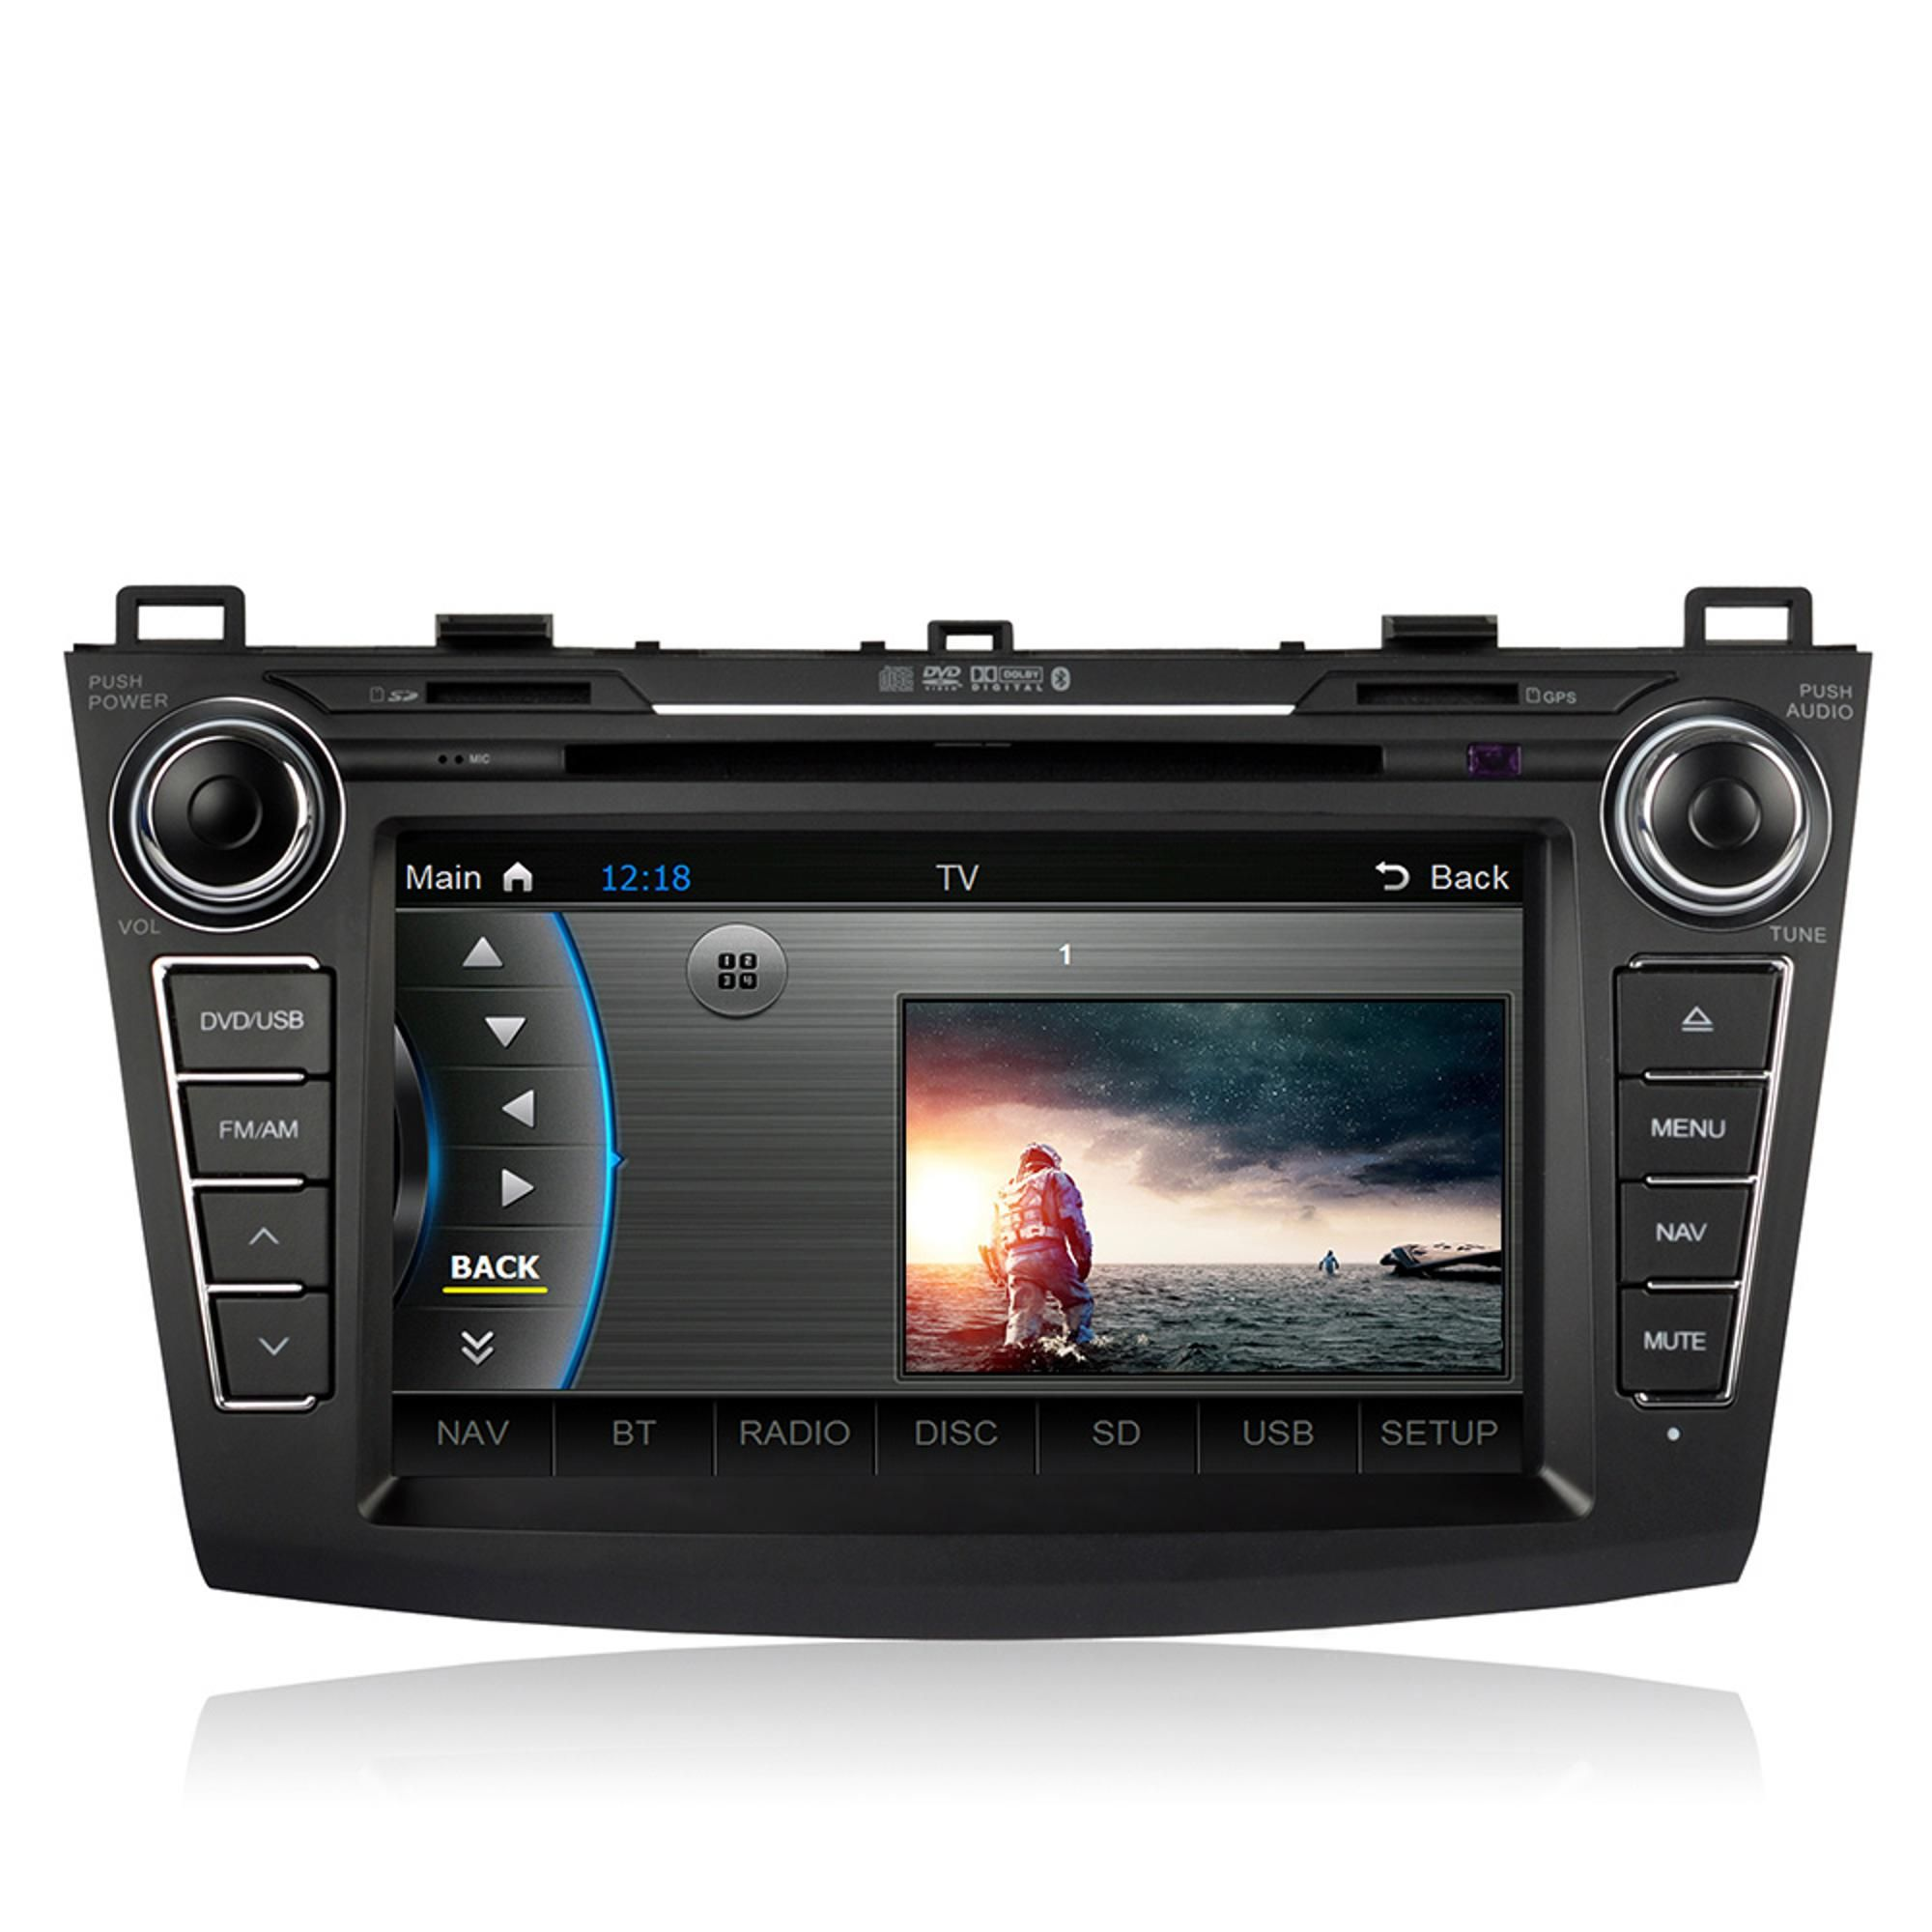 small resolution of caska 8 inch hd touch screen car in dash dvd player 2 din car pc stereo head unit gps navigation bluetooth radio multimedia system for mazda 3